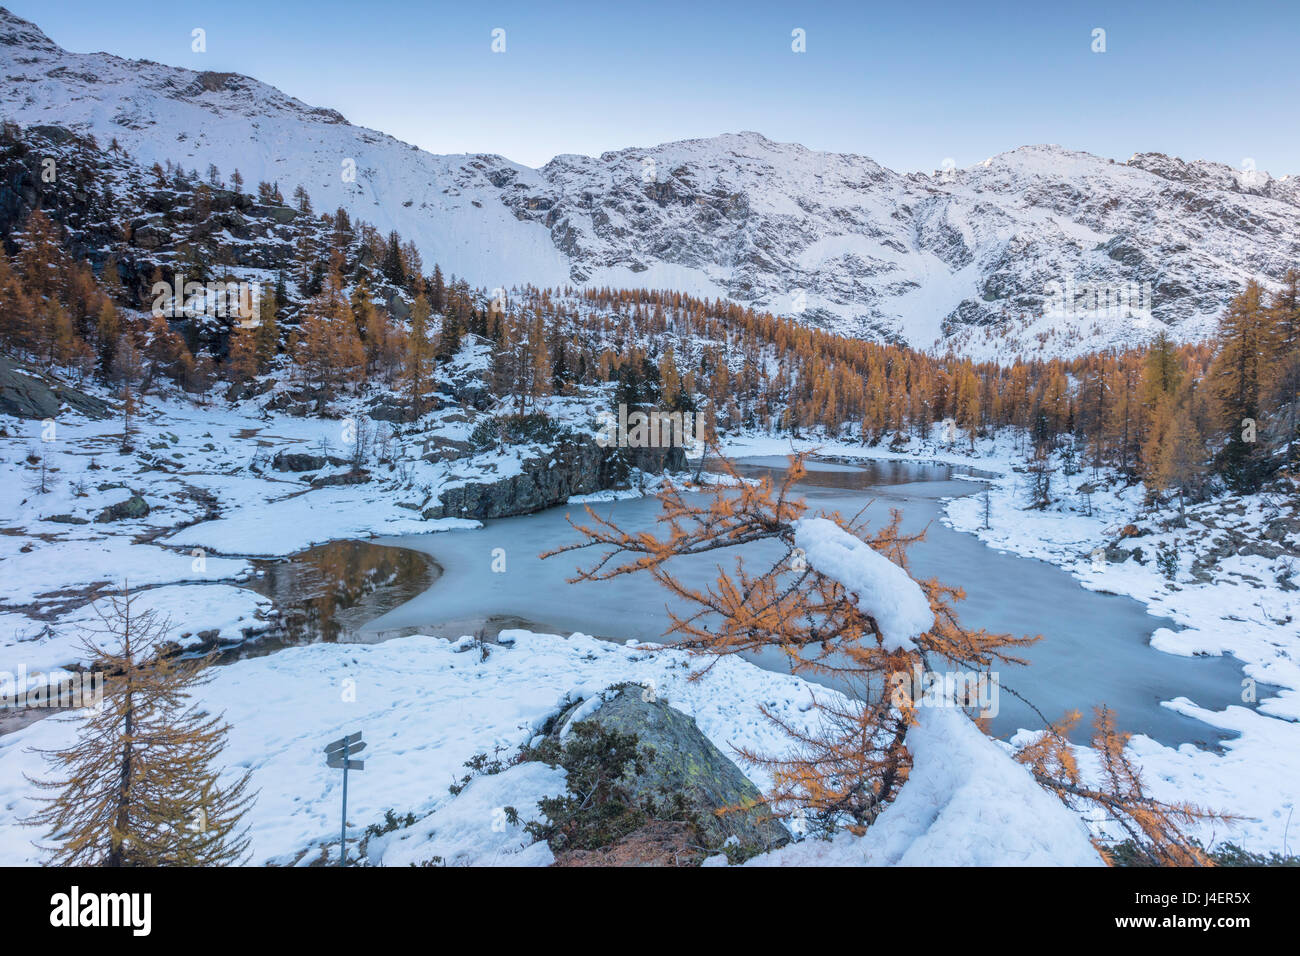 Red larches frame the frozen Lake Mufule, Malenco Valley, Province of Sondrio, Valtellina, Lombardy, Italy, Europe Stock Photo